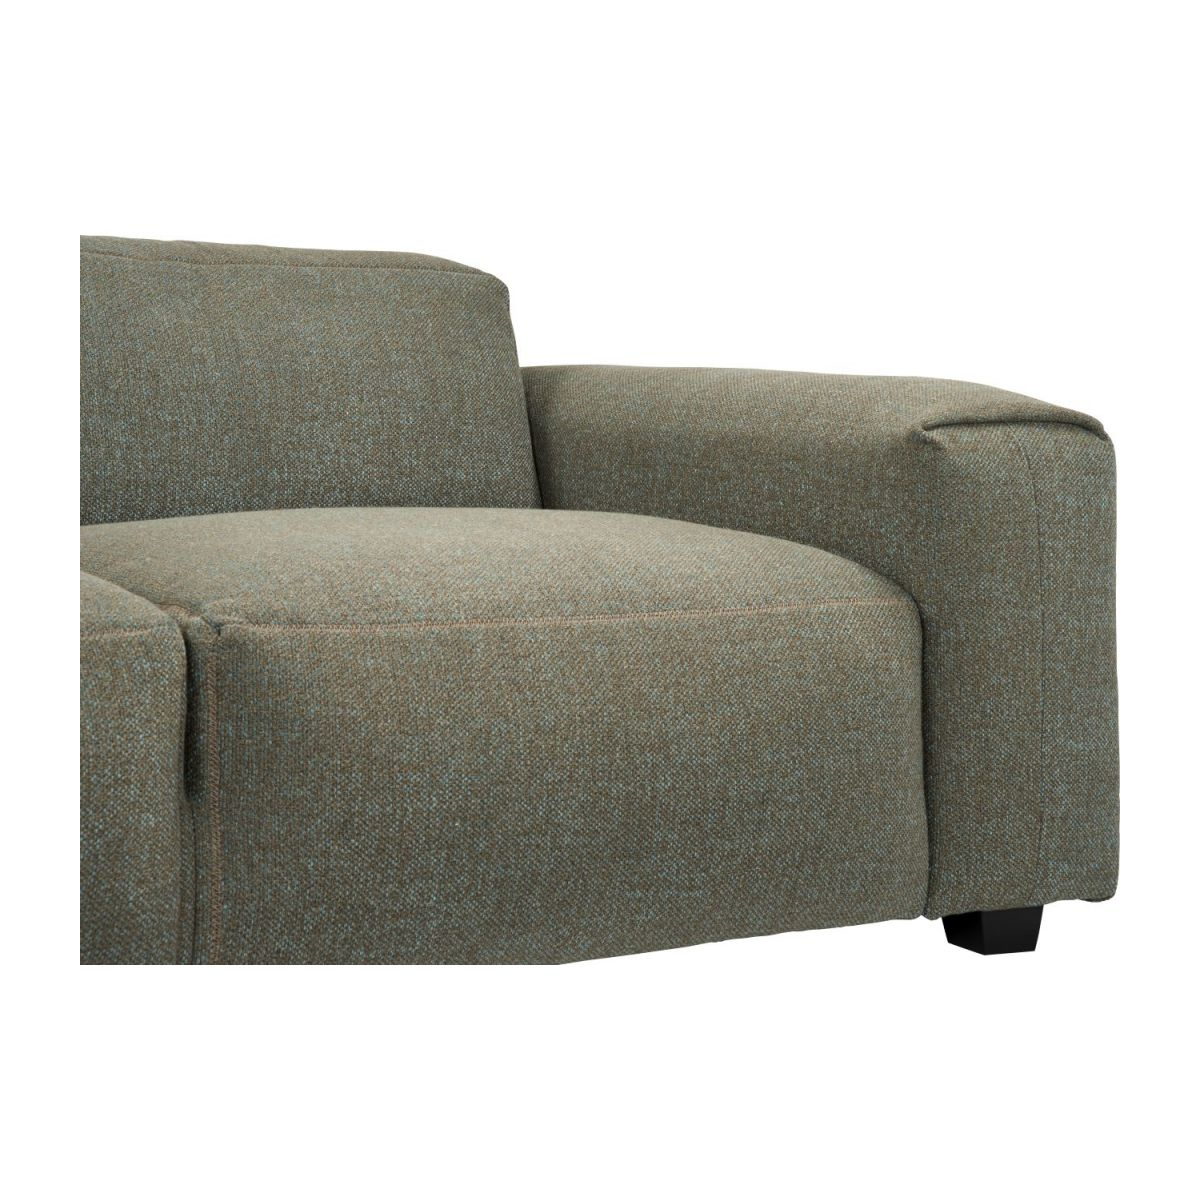 2 seater sofa in Lecce fabric, slade grey n°5